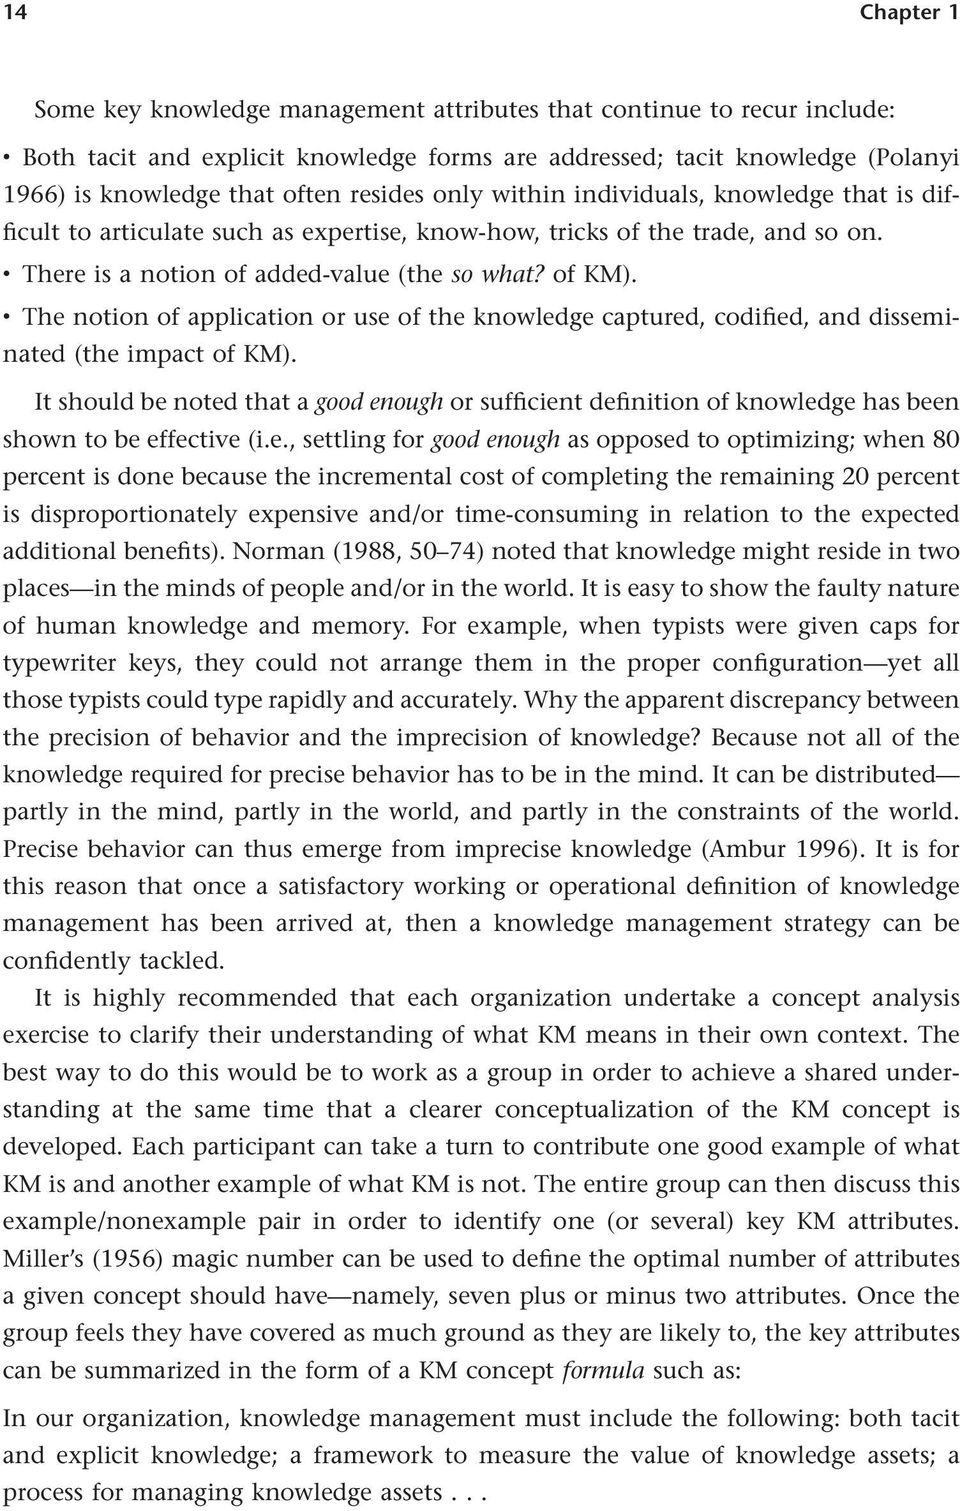 The notion of application or use of the knowledge captured, codified, and disseminated (the impact of KM).